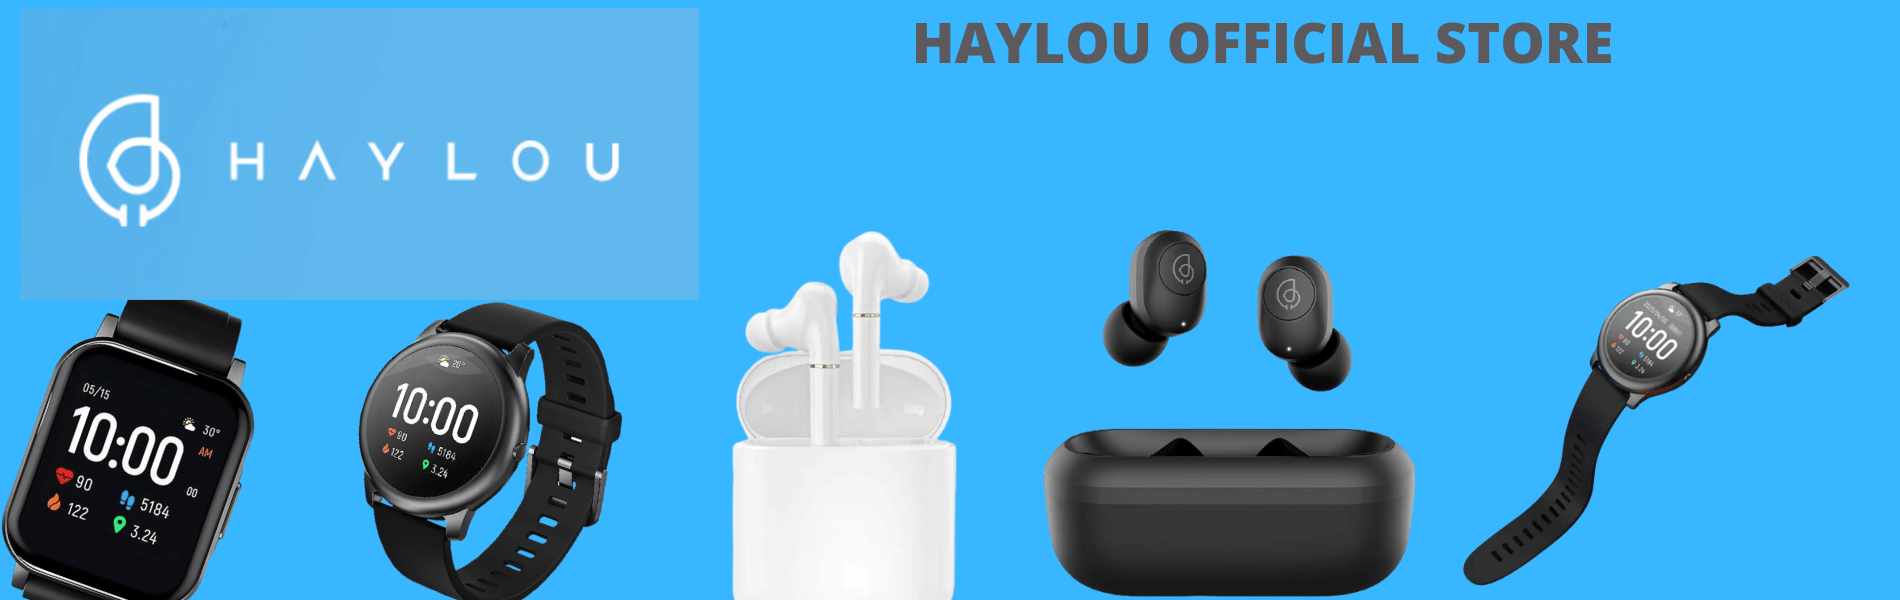 haylou official store pakistan